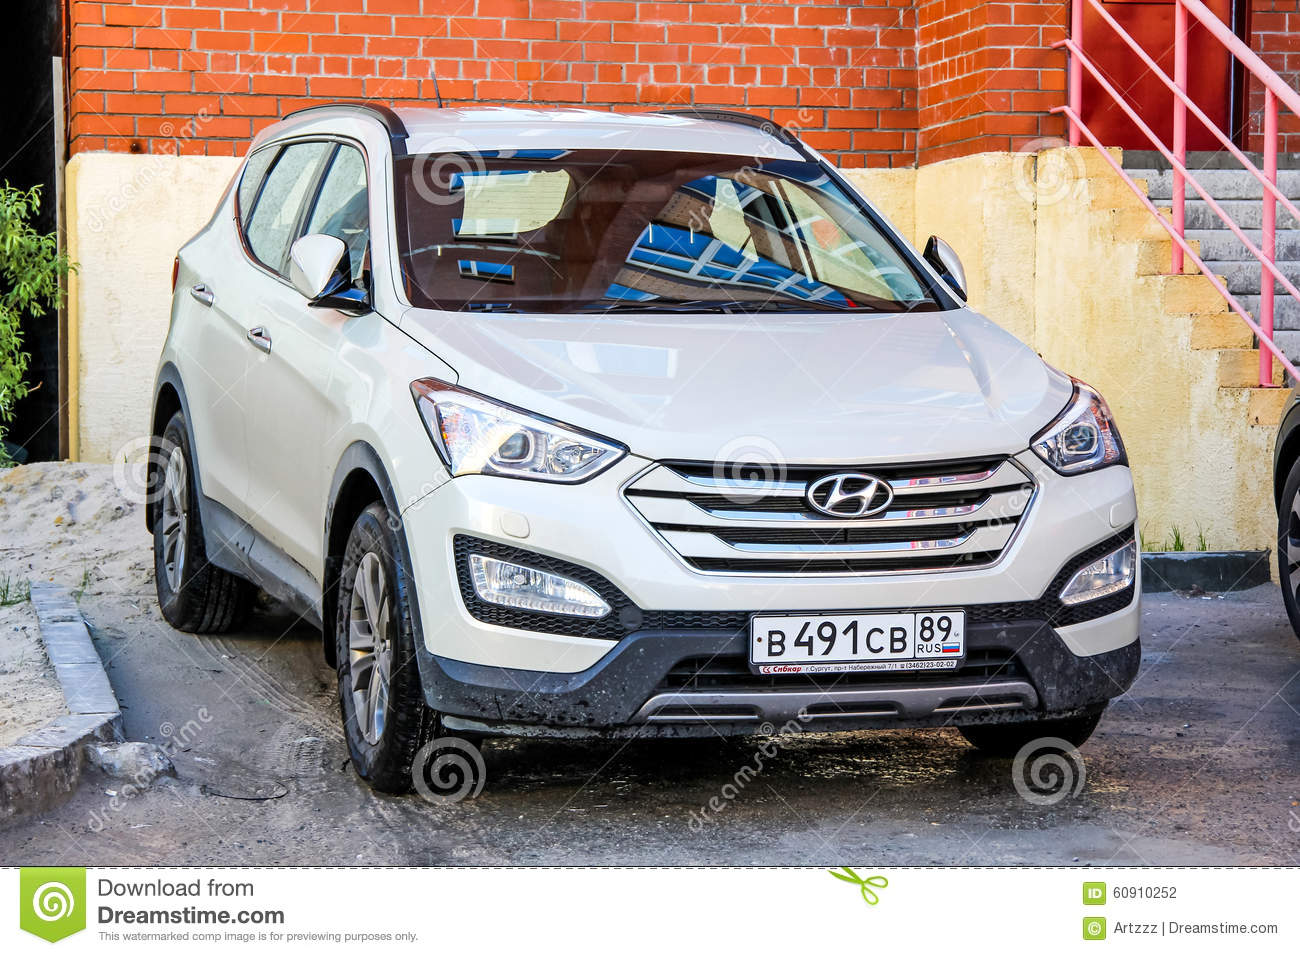 Hyundai Santa Fe Editorial Photography Image Of Hatchback